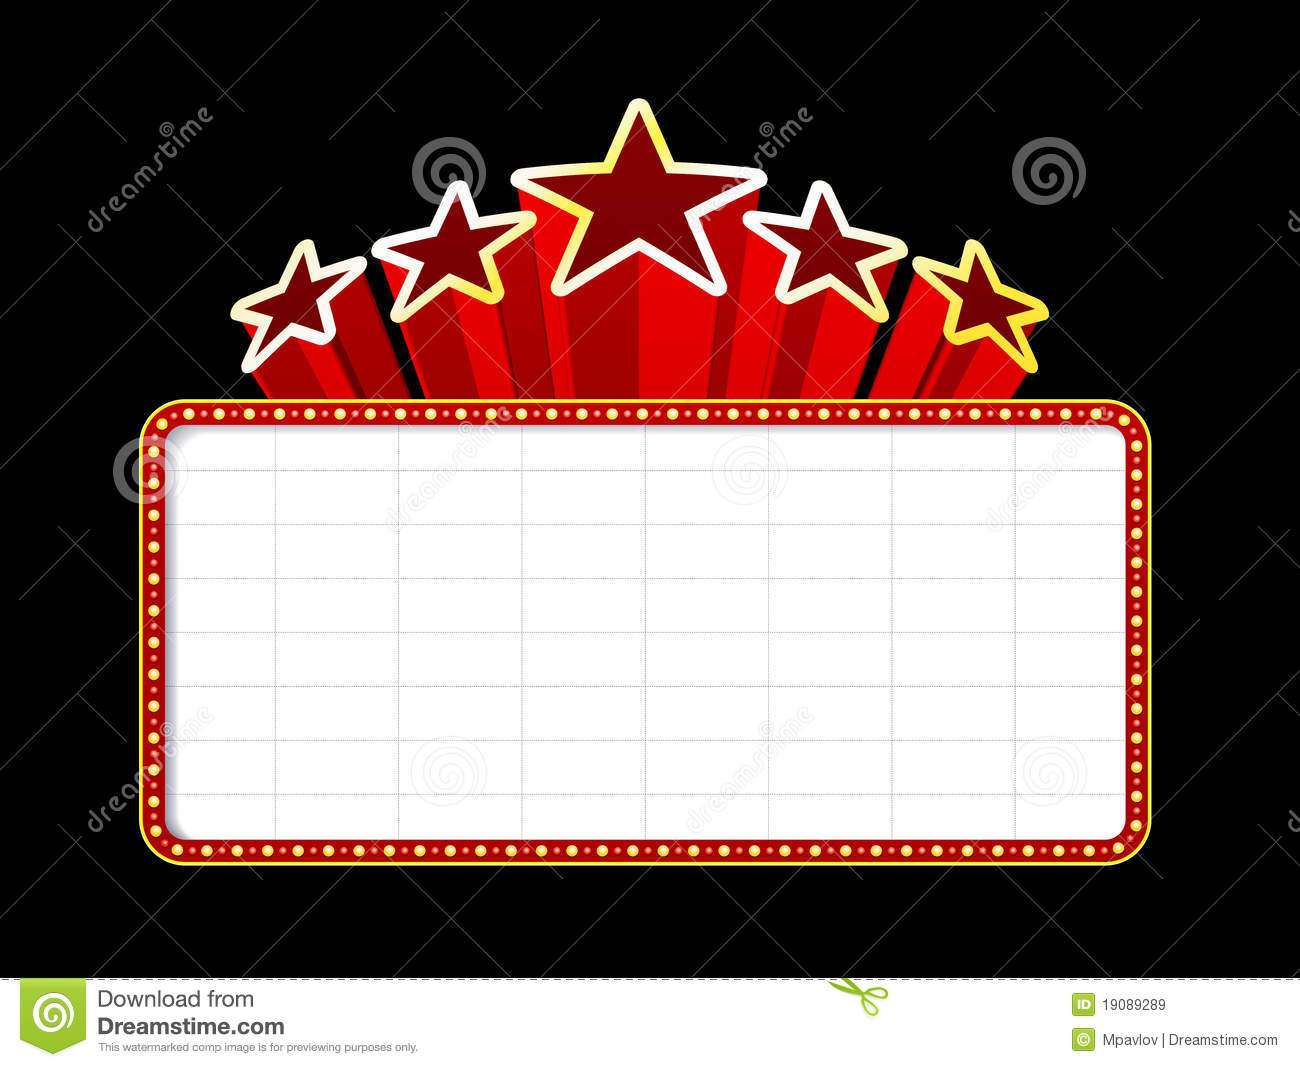 clipart royalty free library Arcade clipart broadway ticket. .